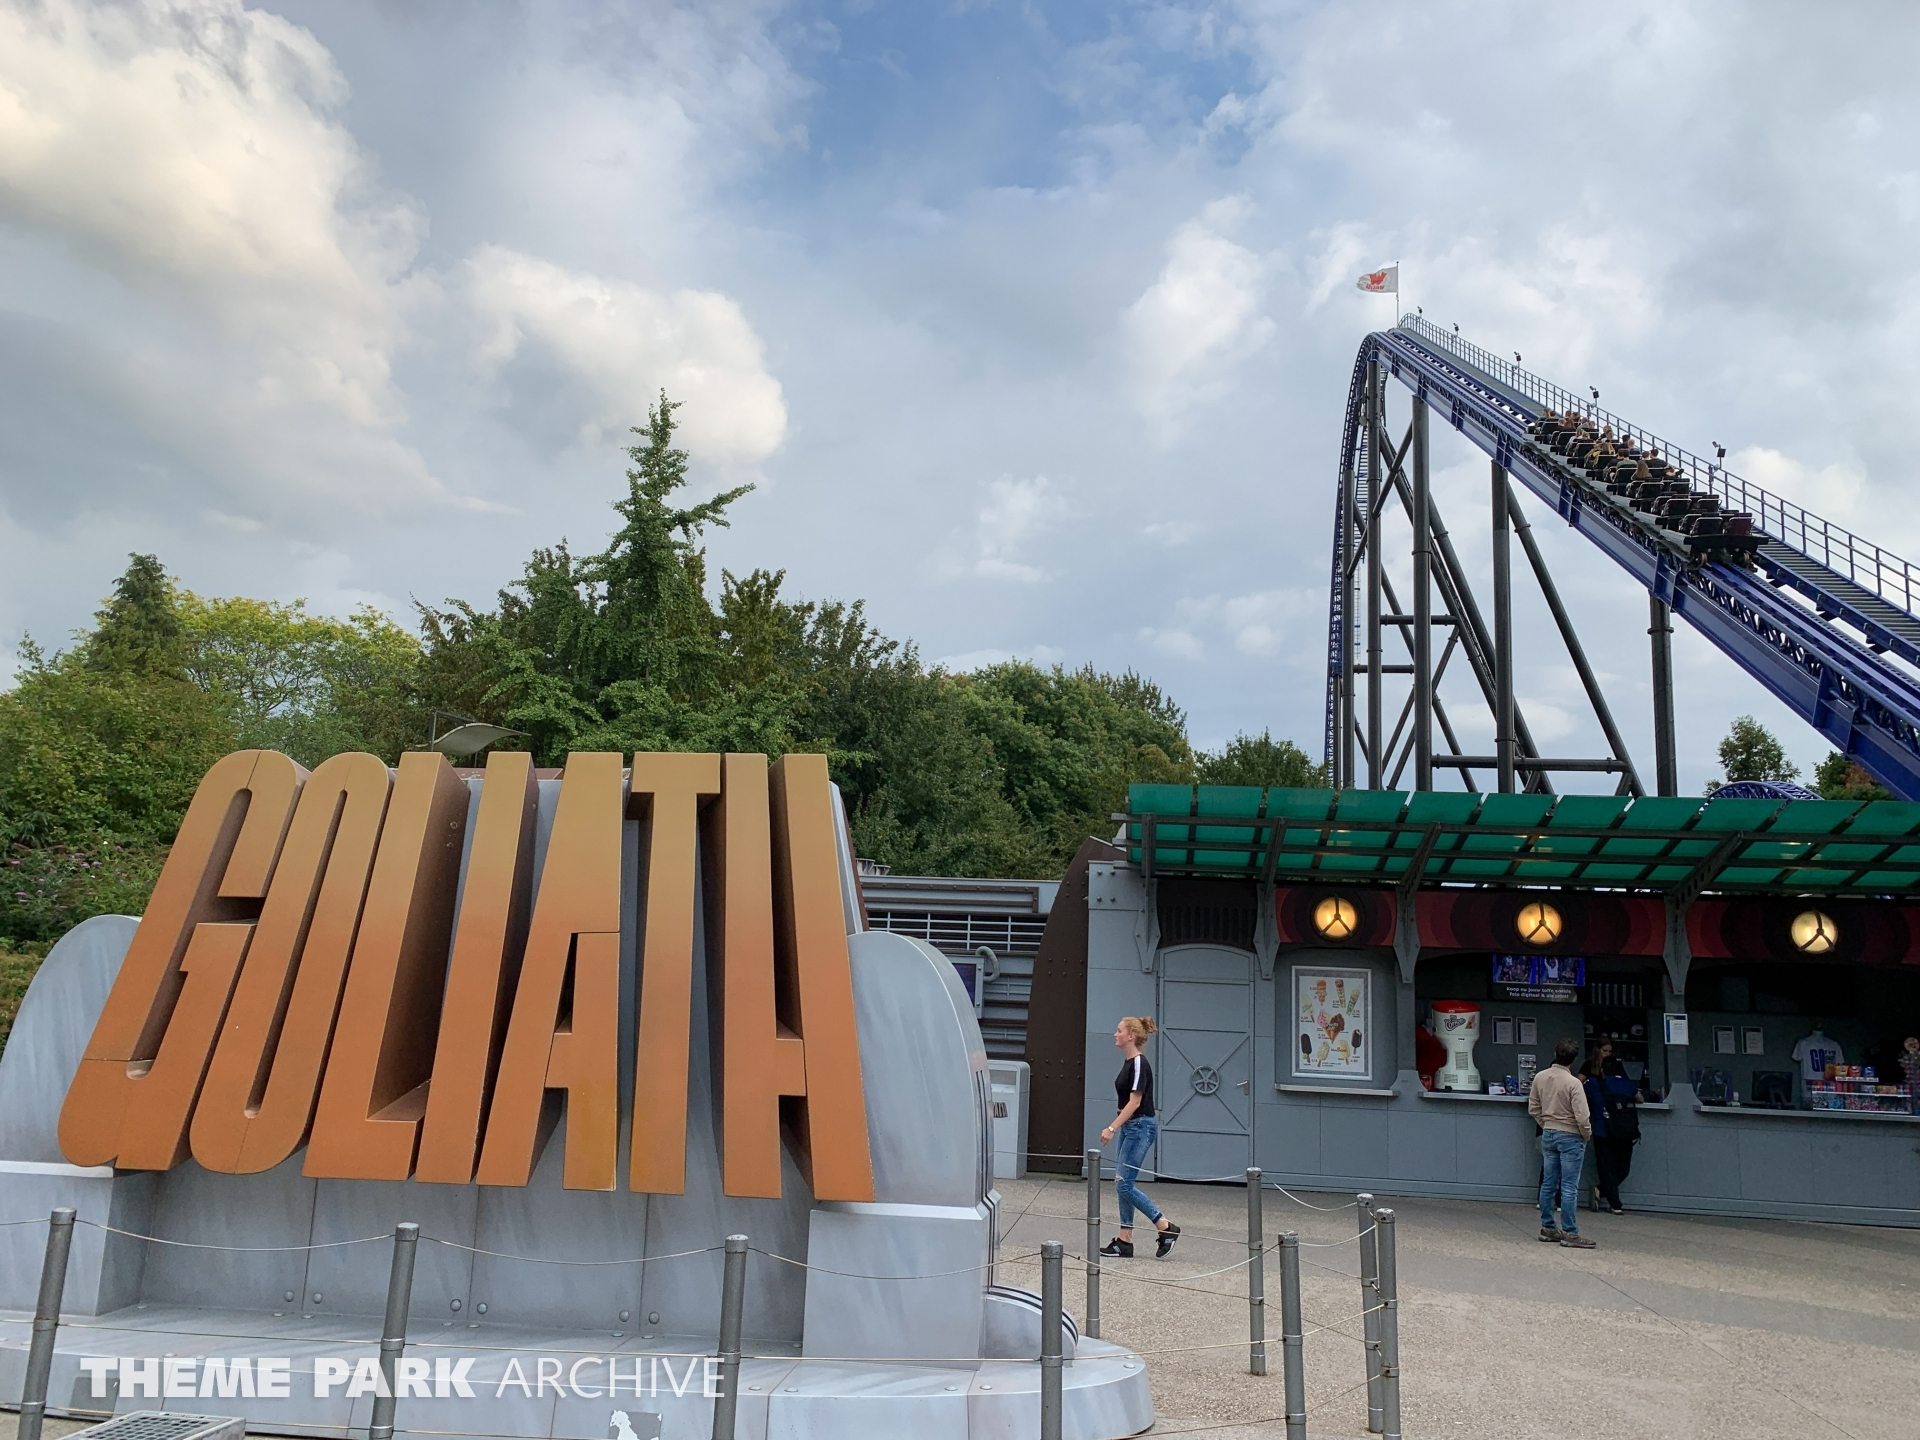 Goliath at Walibi Holland